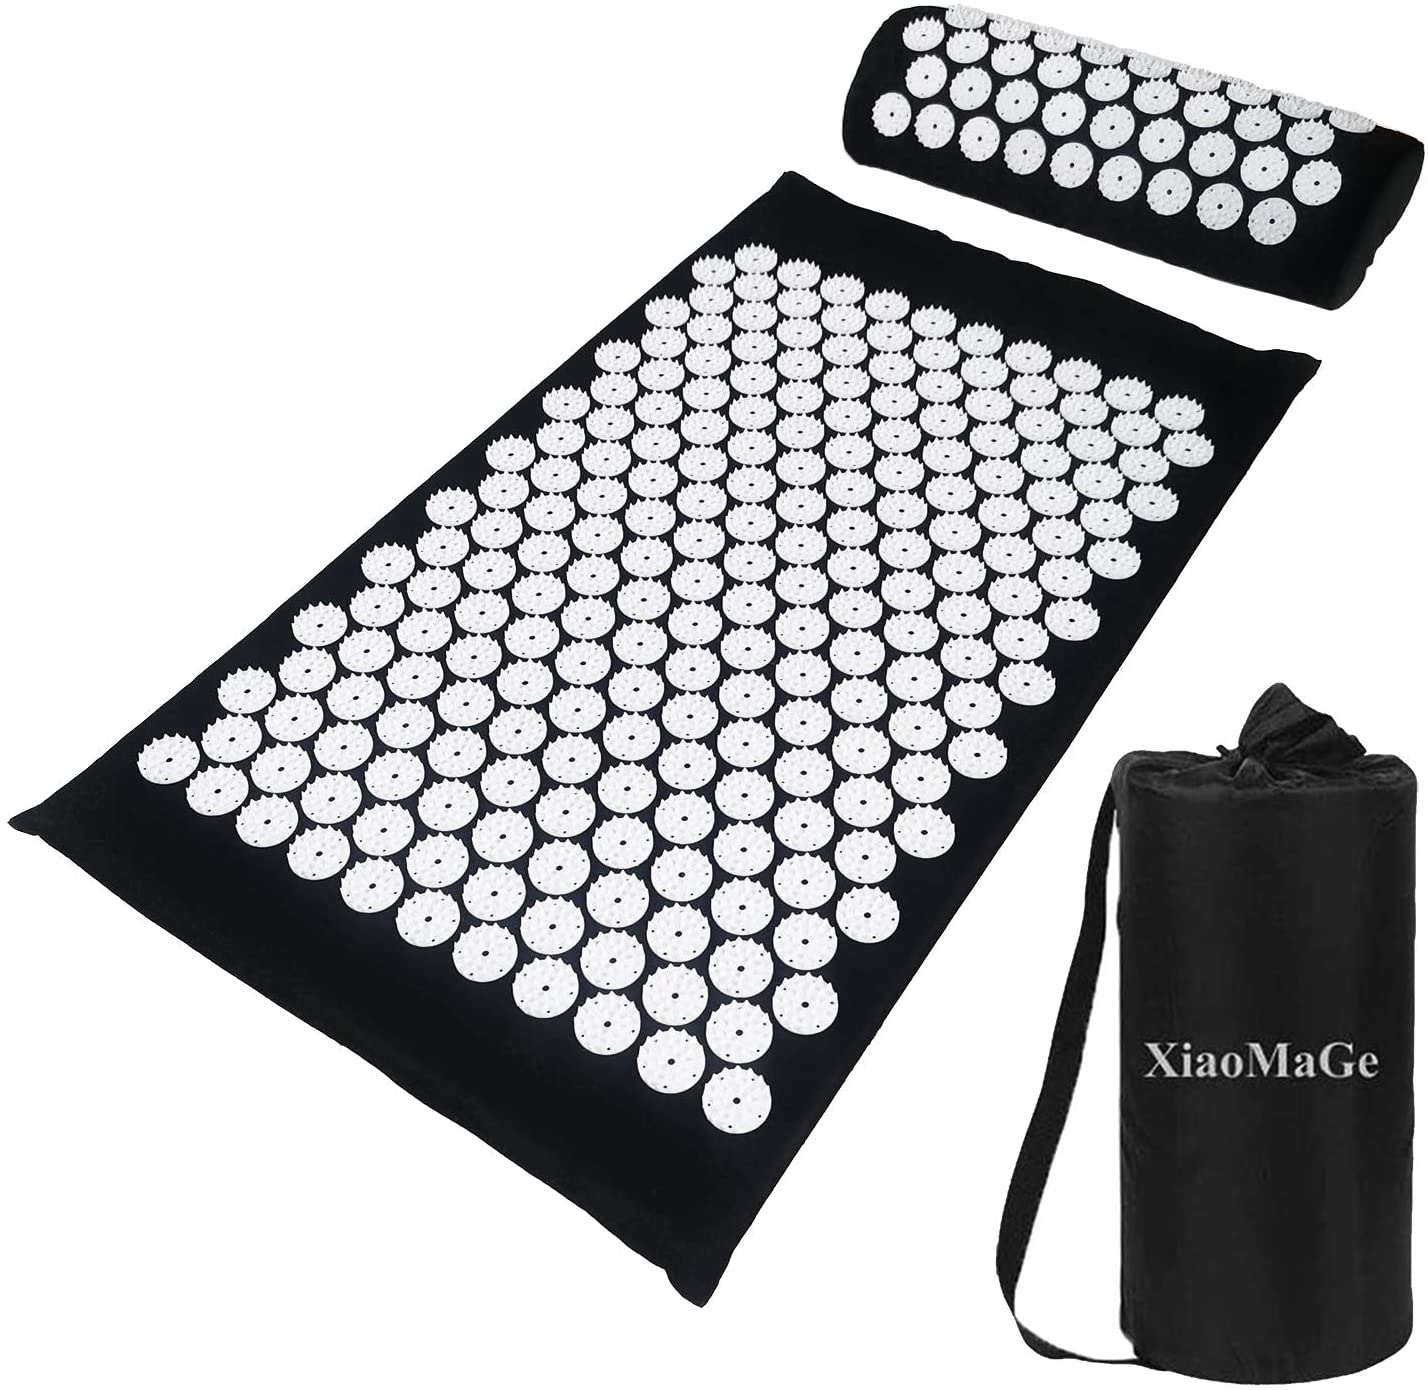 2. XiaoMaGe Yoga Acupressure Mat and Pillow Set